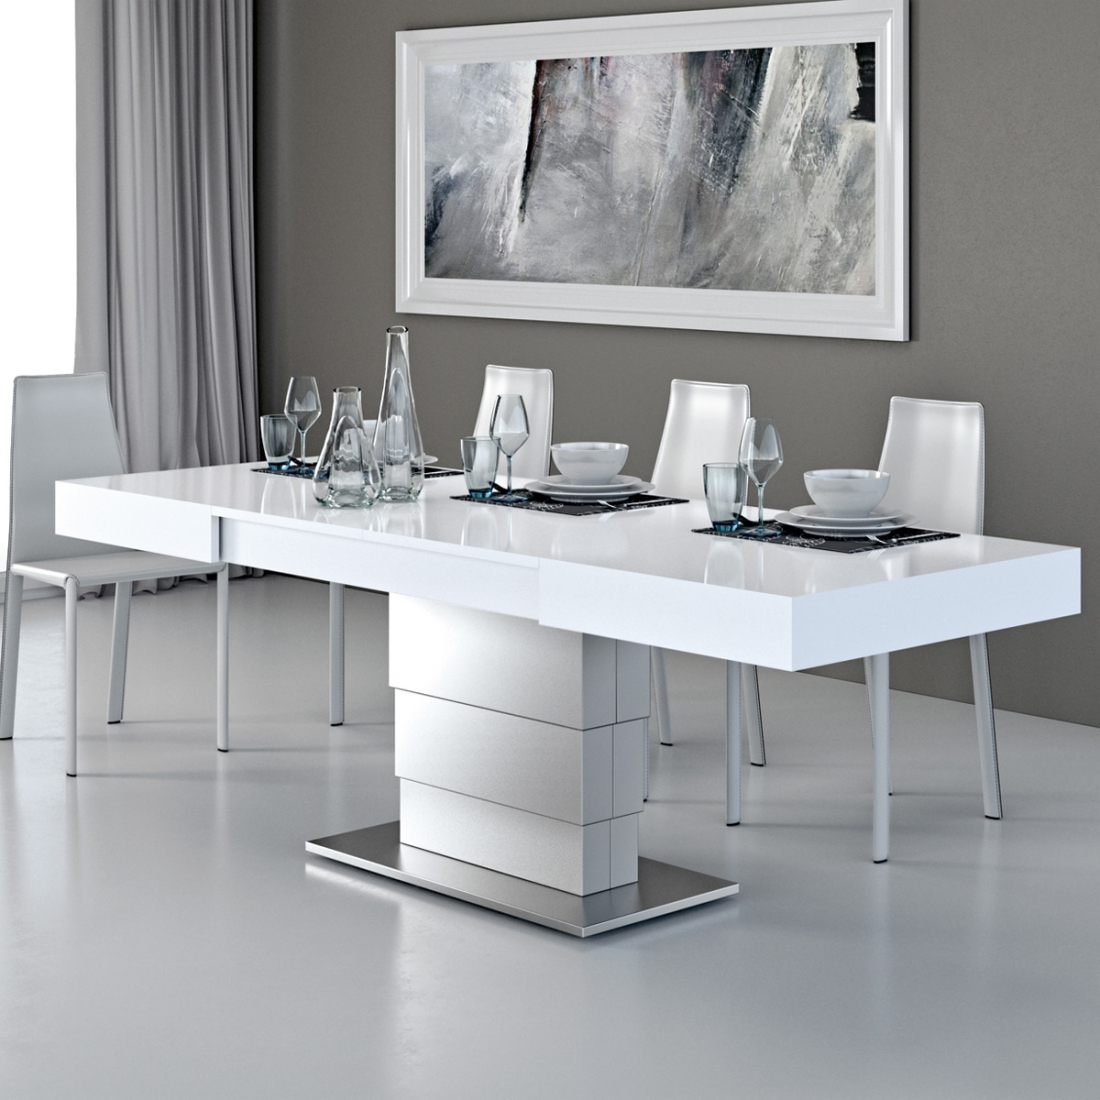 Table basse modulable ares fold inox zendart design - Table basse relevable design italien ...